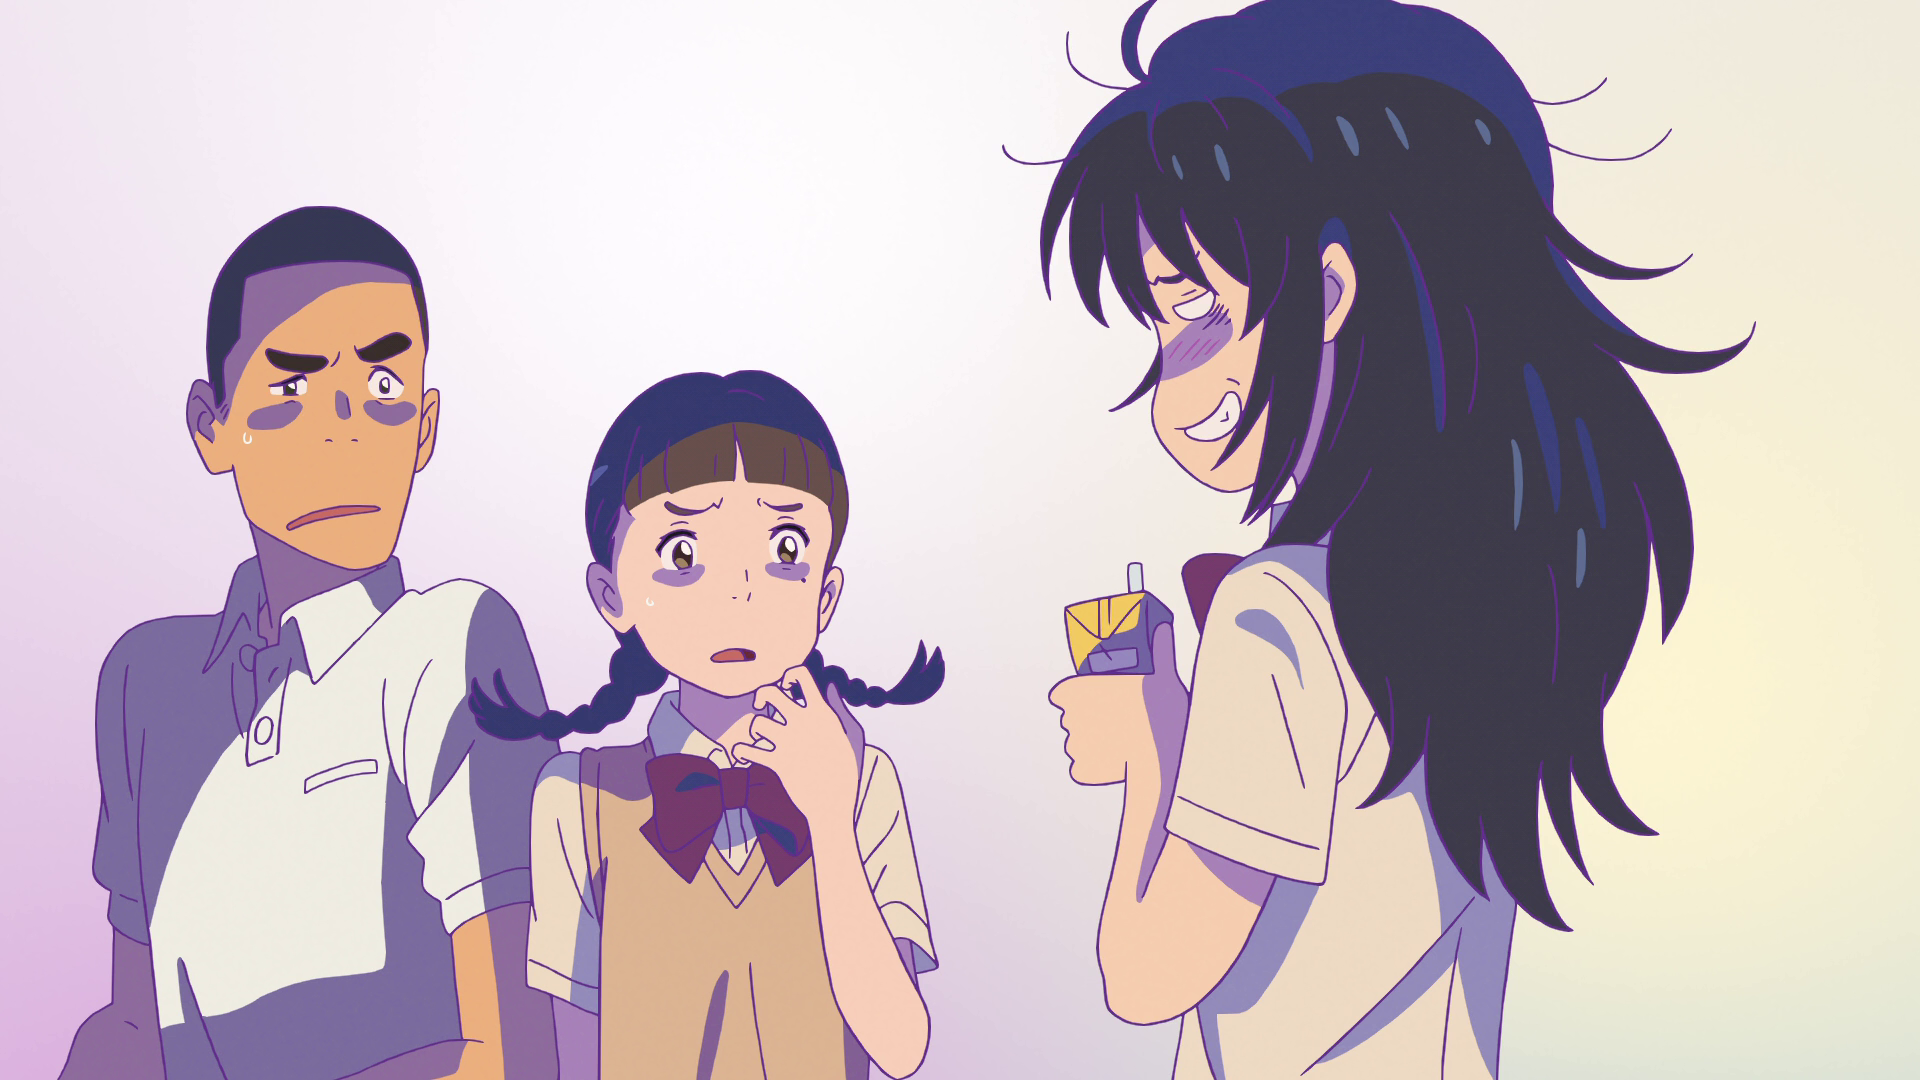 Your Name Anime TV Tropes - Lecturer accidentally projected porn one classes